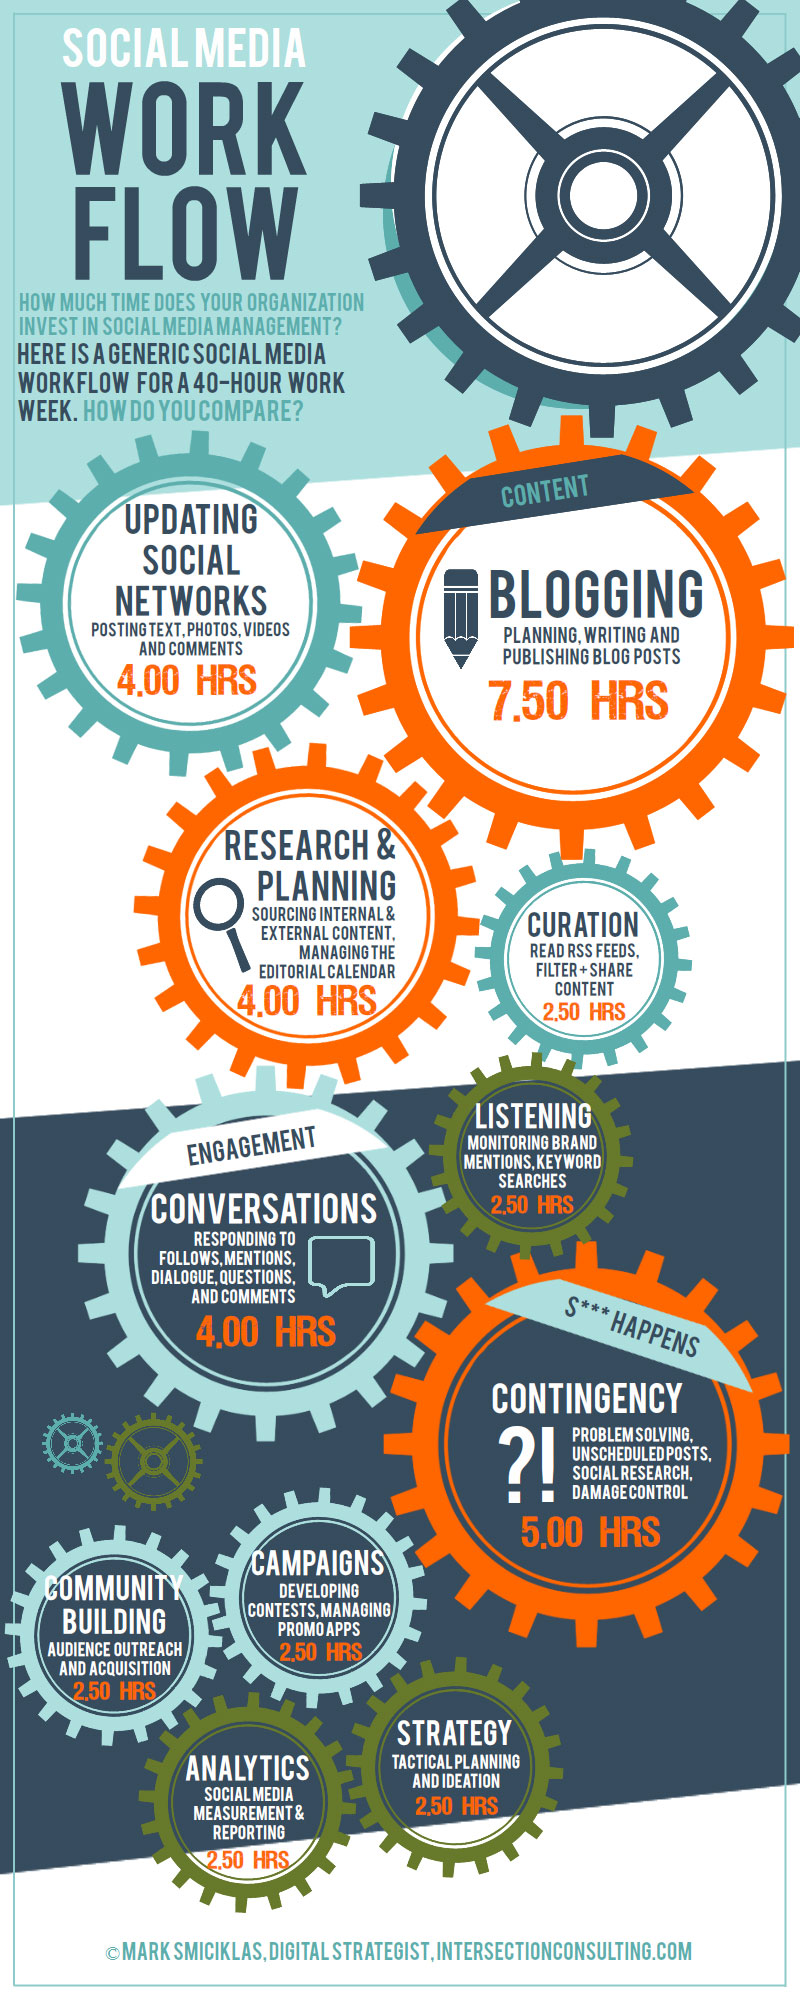 social-media-manager-workweek-infographic[1]